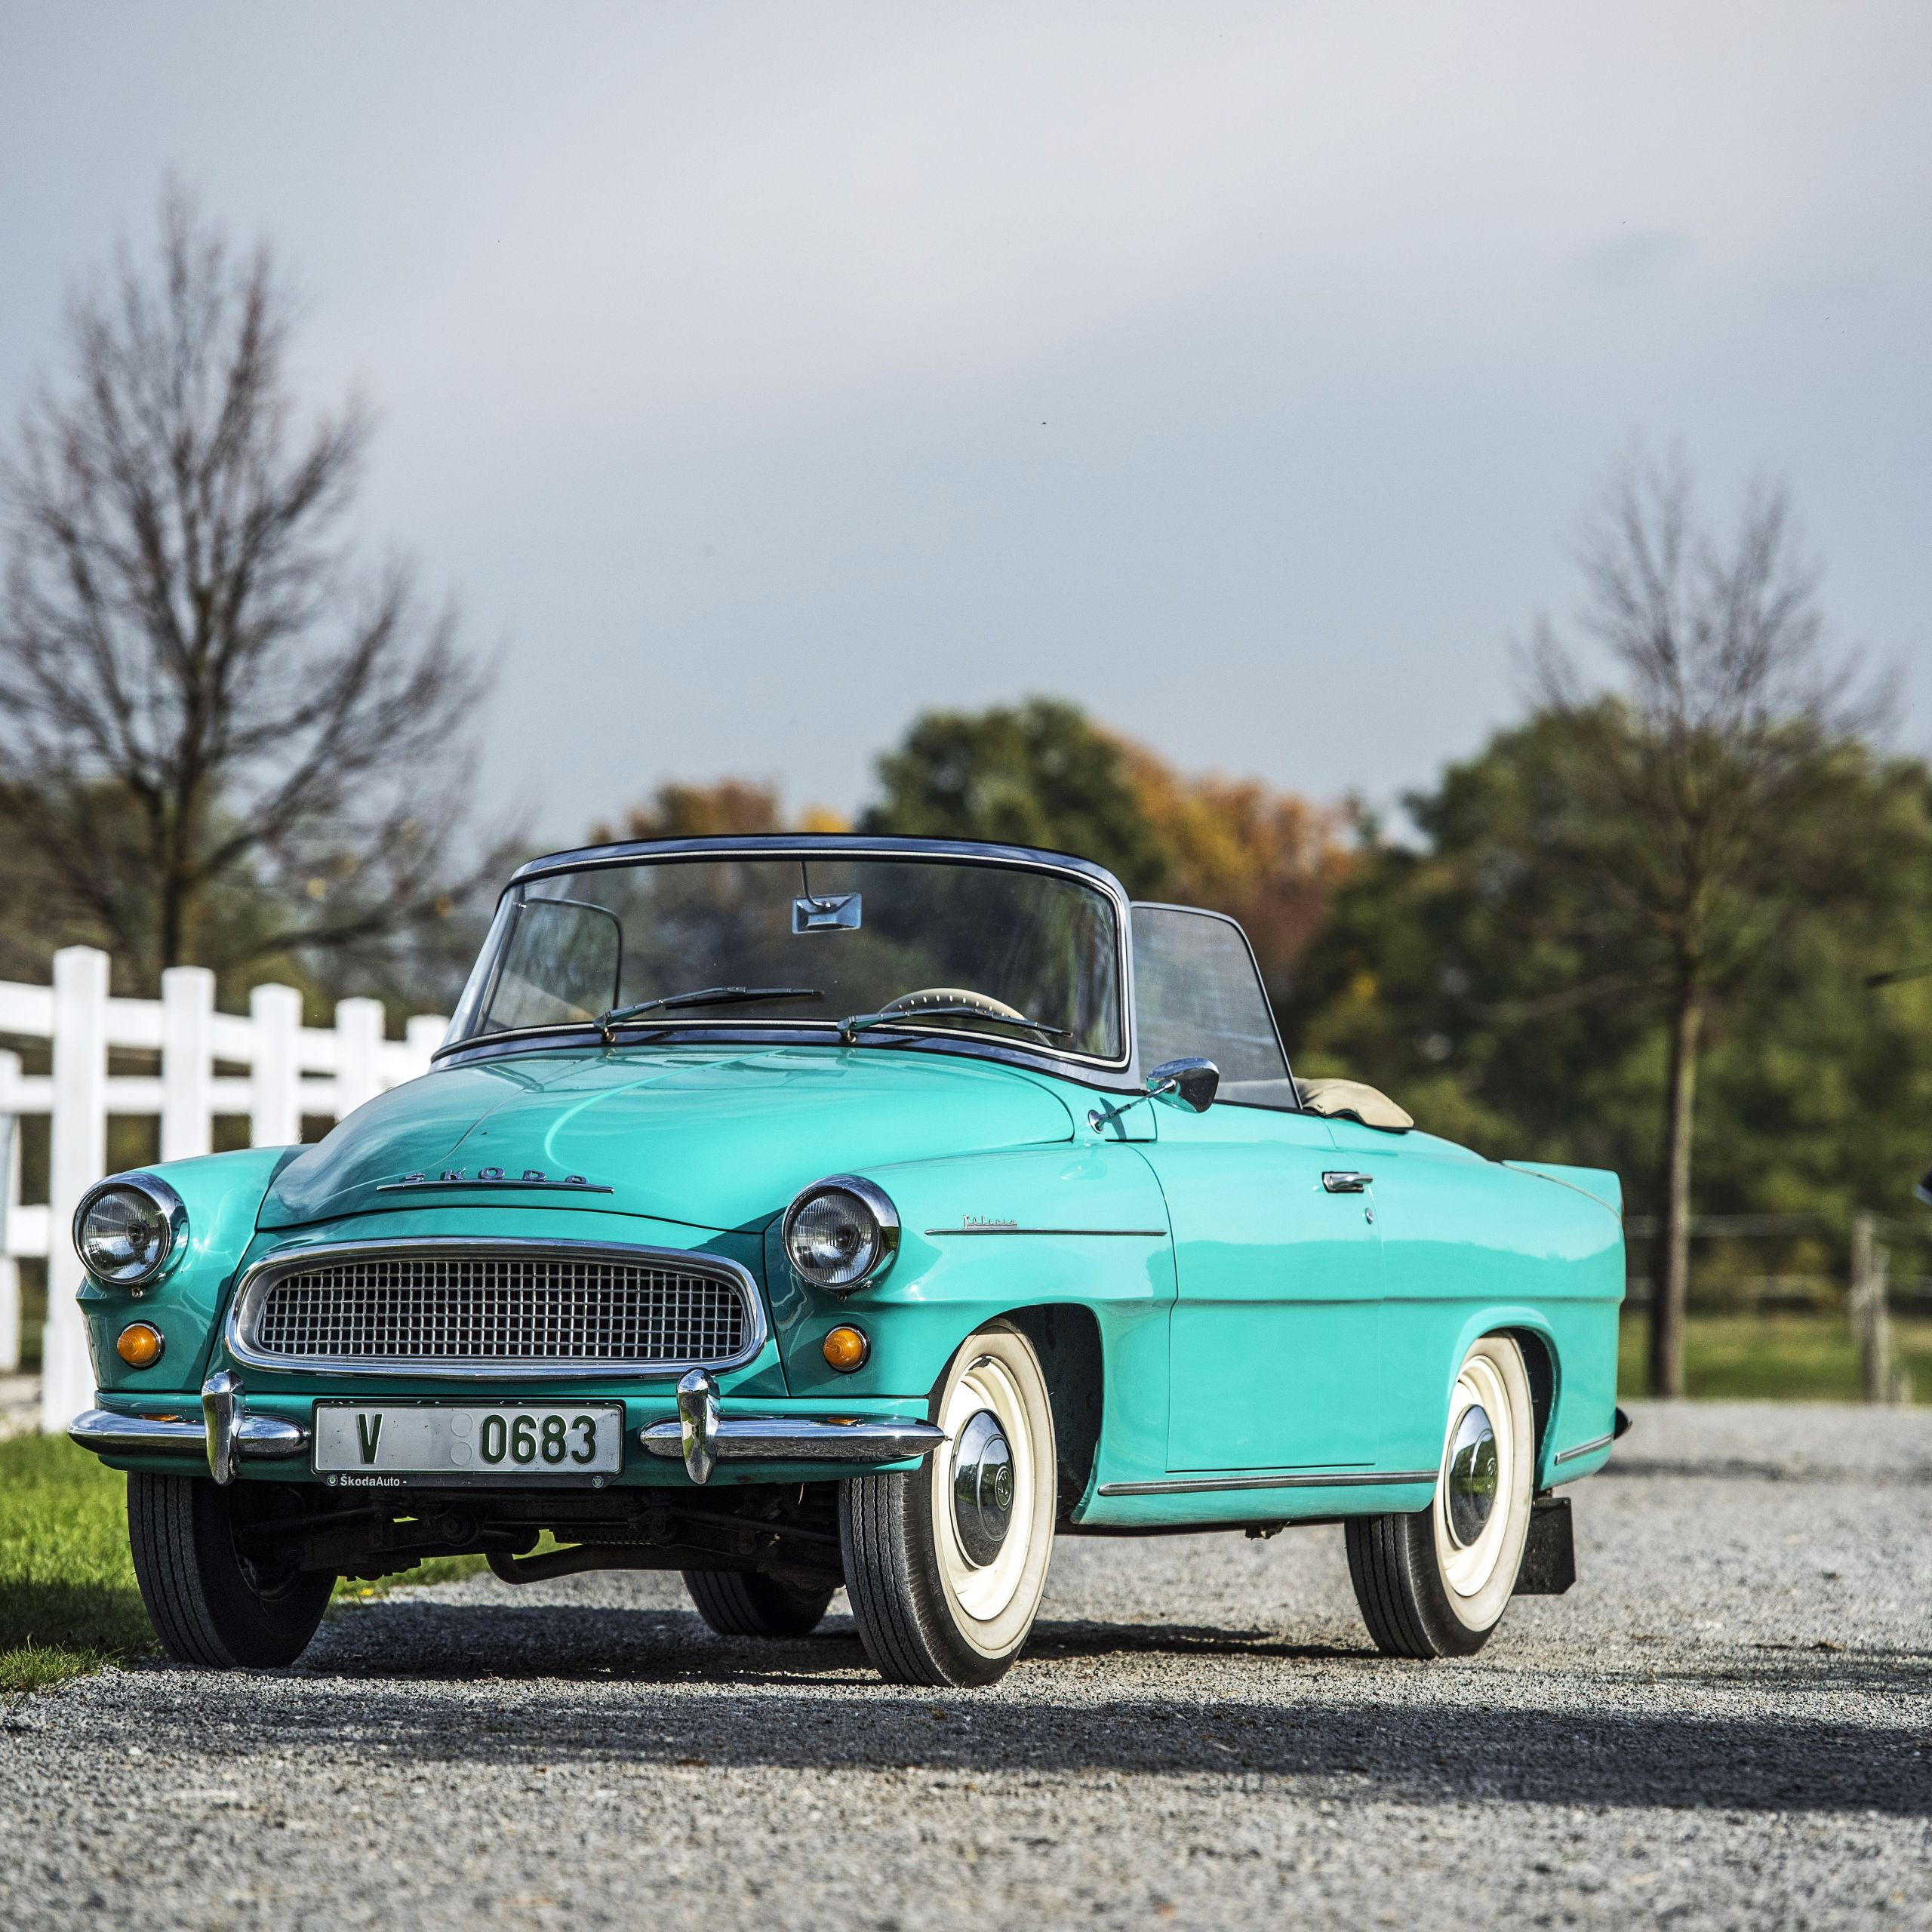 Good Car Websites Buy Used Cars Inspirational the Åkoda Felicia Convertible Celebrated Its World Premiere